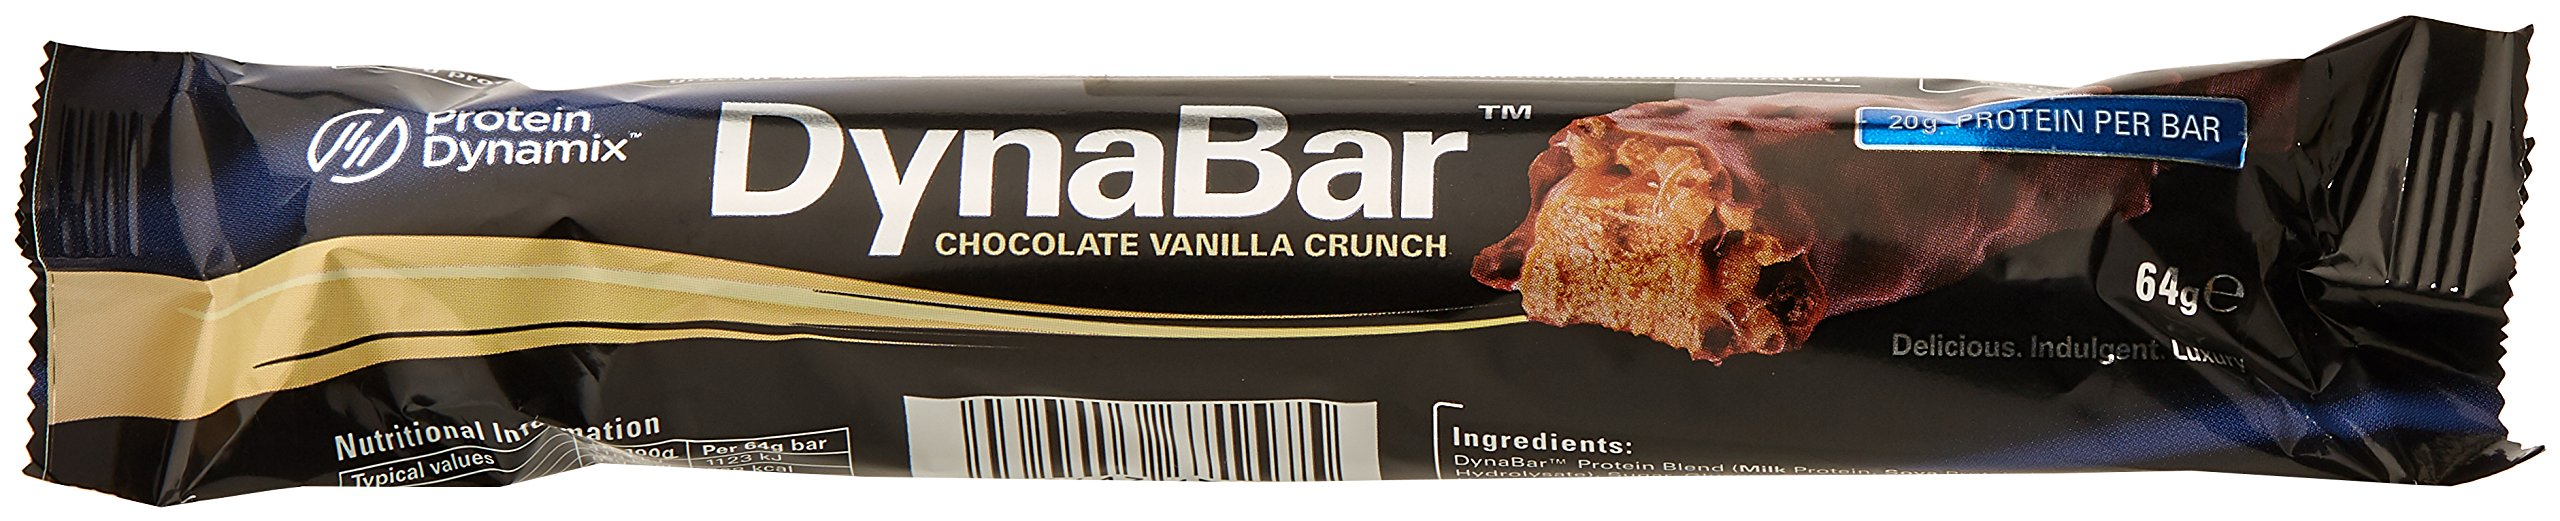 Protein Dynamix Dynabar Chocolate Vanilla Crunch Flavour High Protein Snack Bars, 12-Count product image